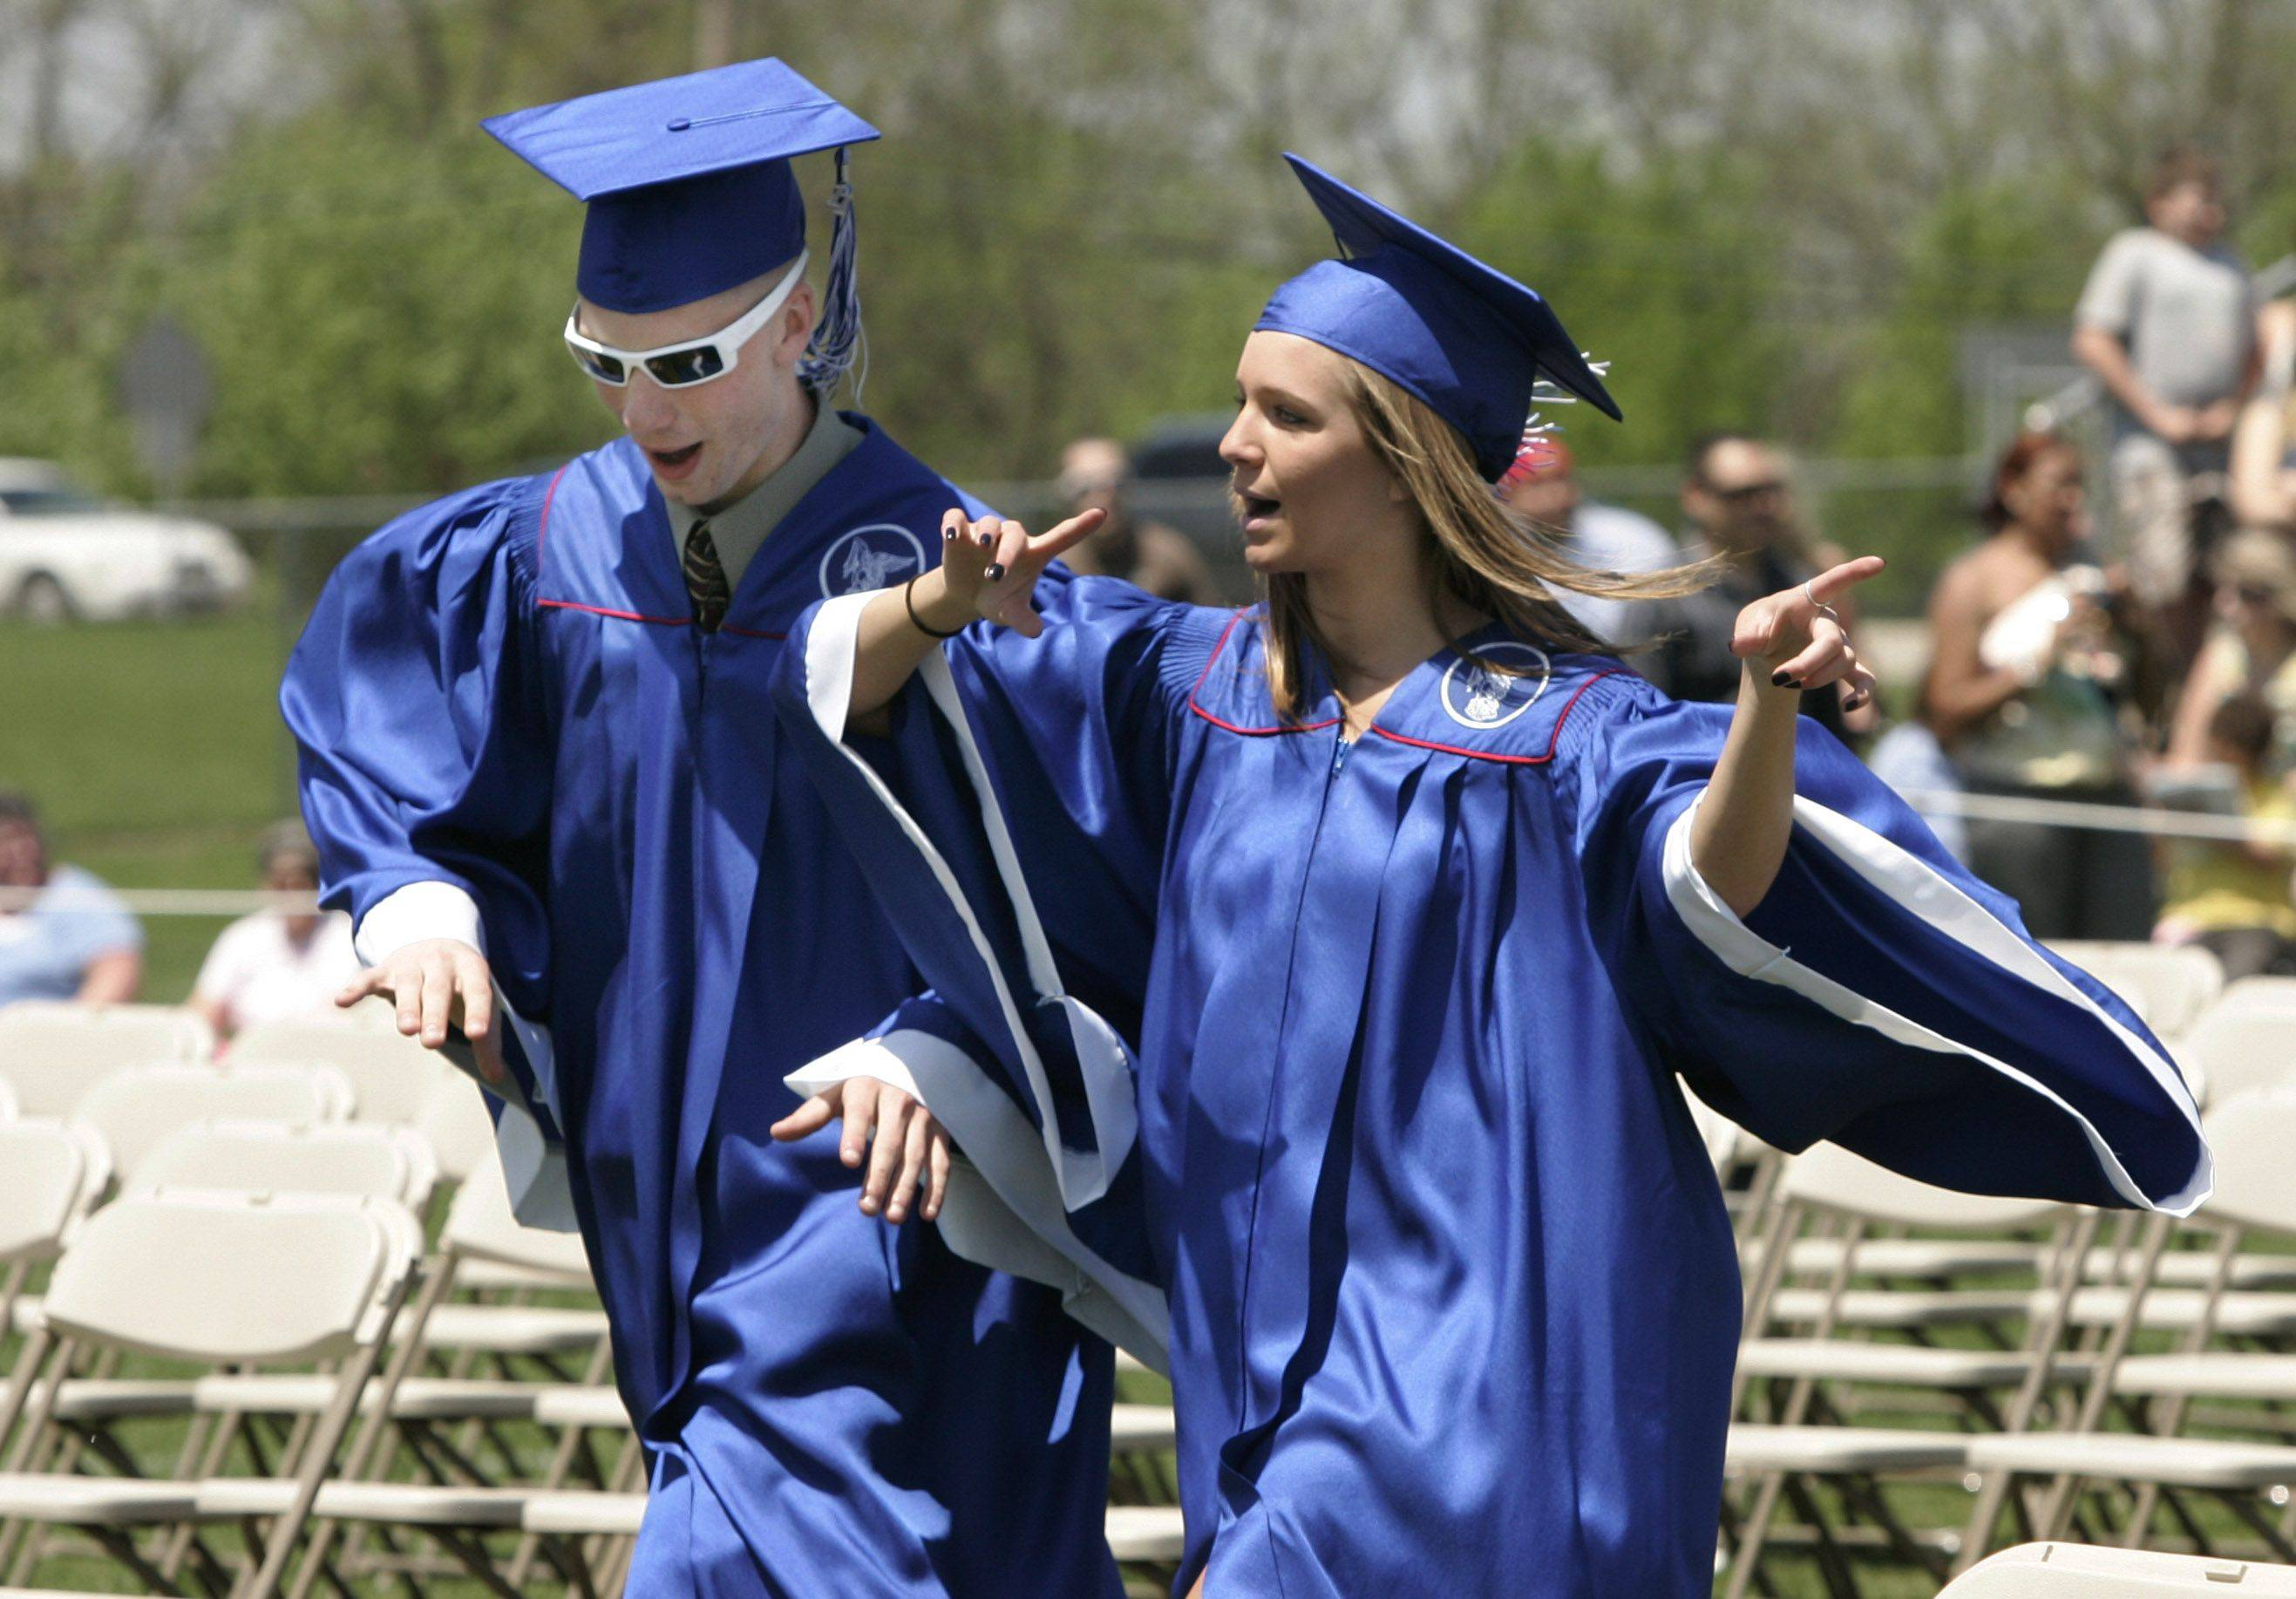 Images: Lakes Community High School graduation